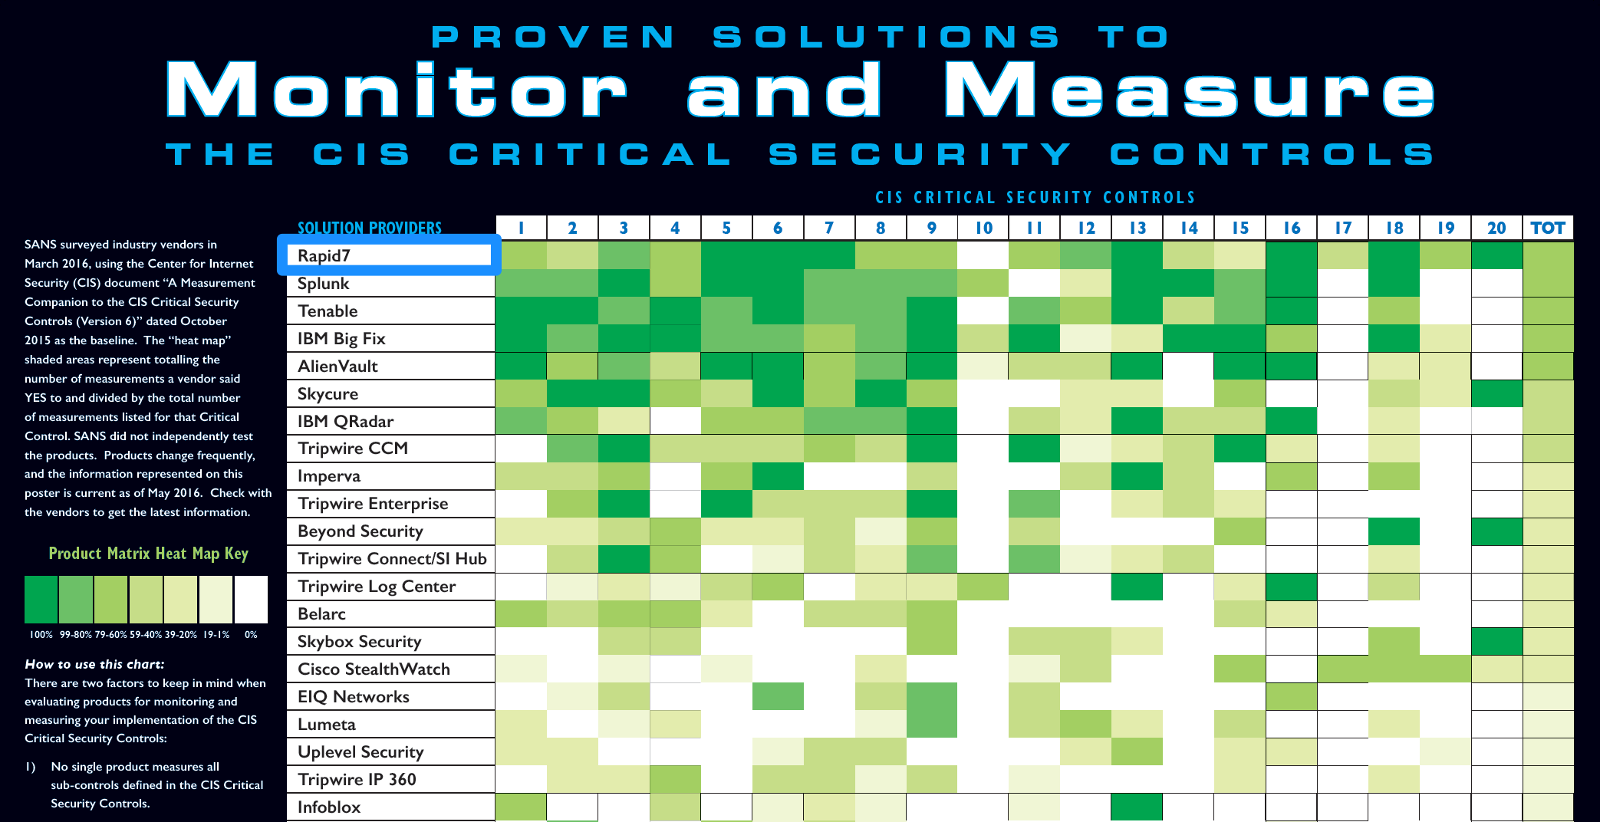 Rapid7 On Top In Sans Top 20 Critical Security Controls